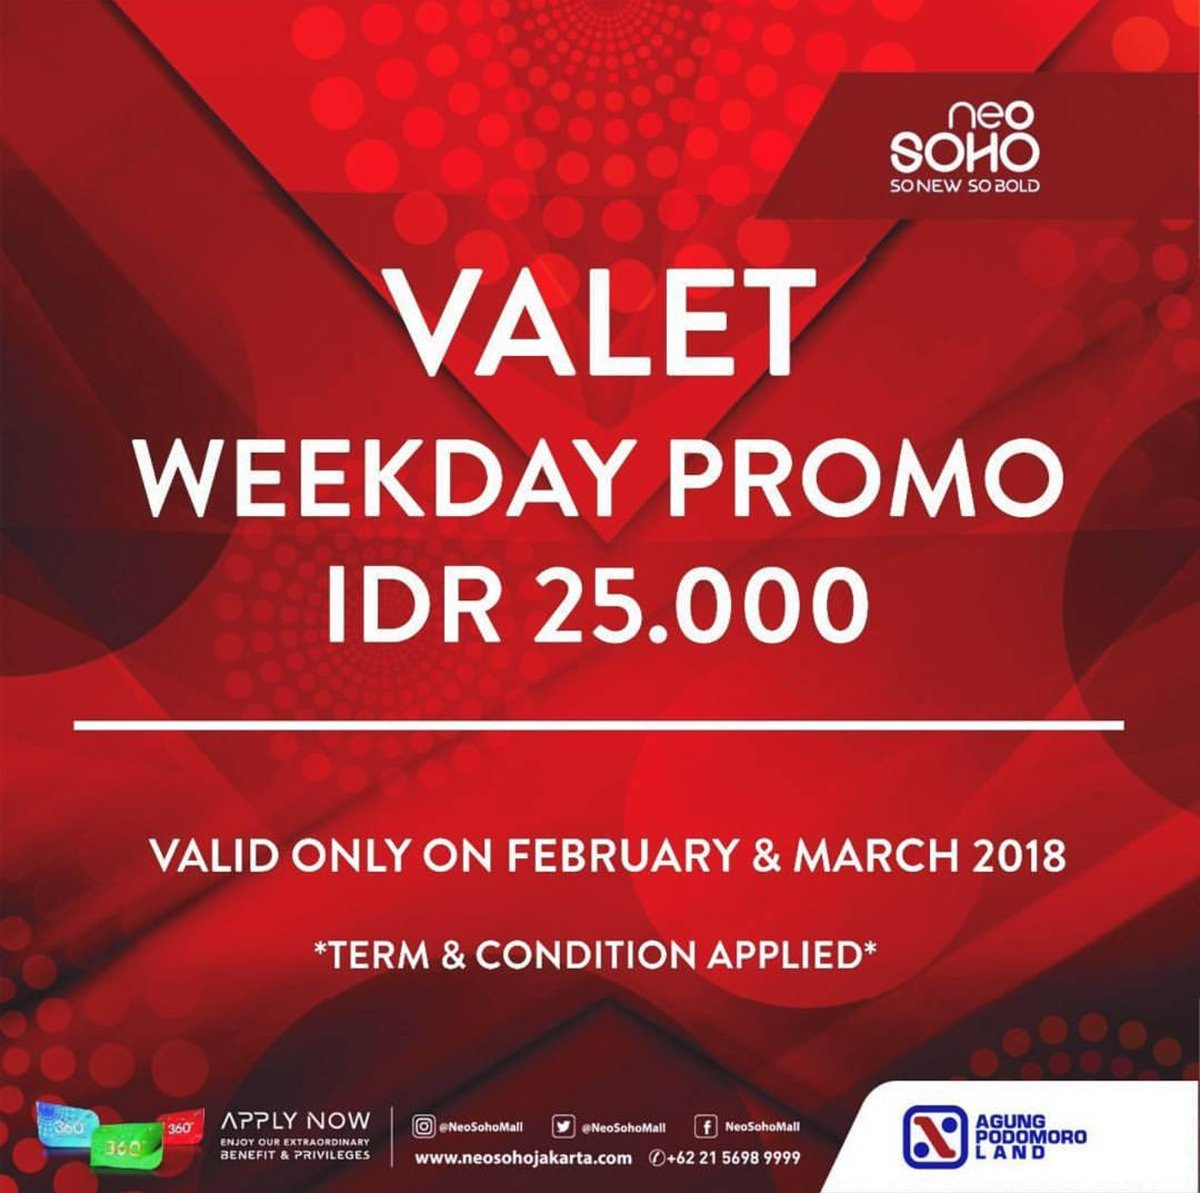 Central Park Mall On Twitter Valet Weekday Promo Idr 25 000 Valid Only On February March T C Apply Neosohomall